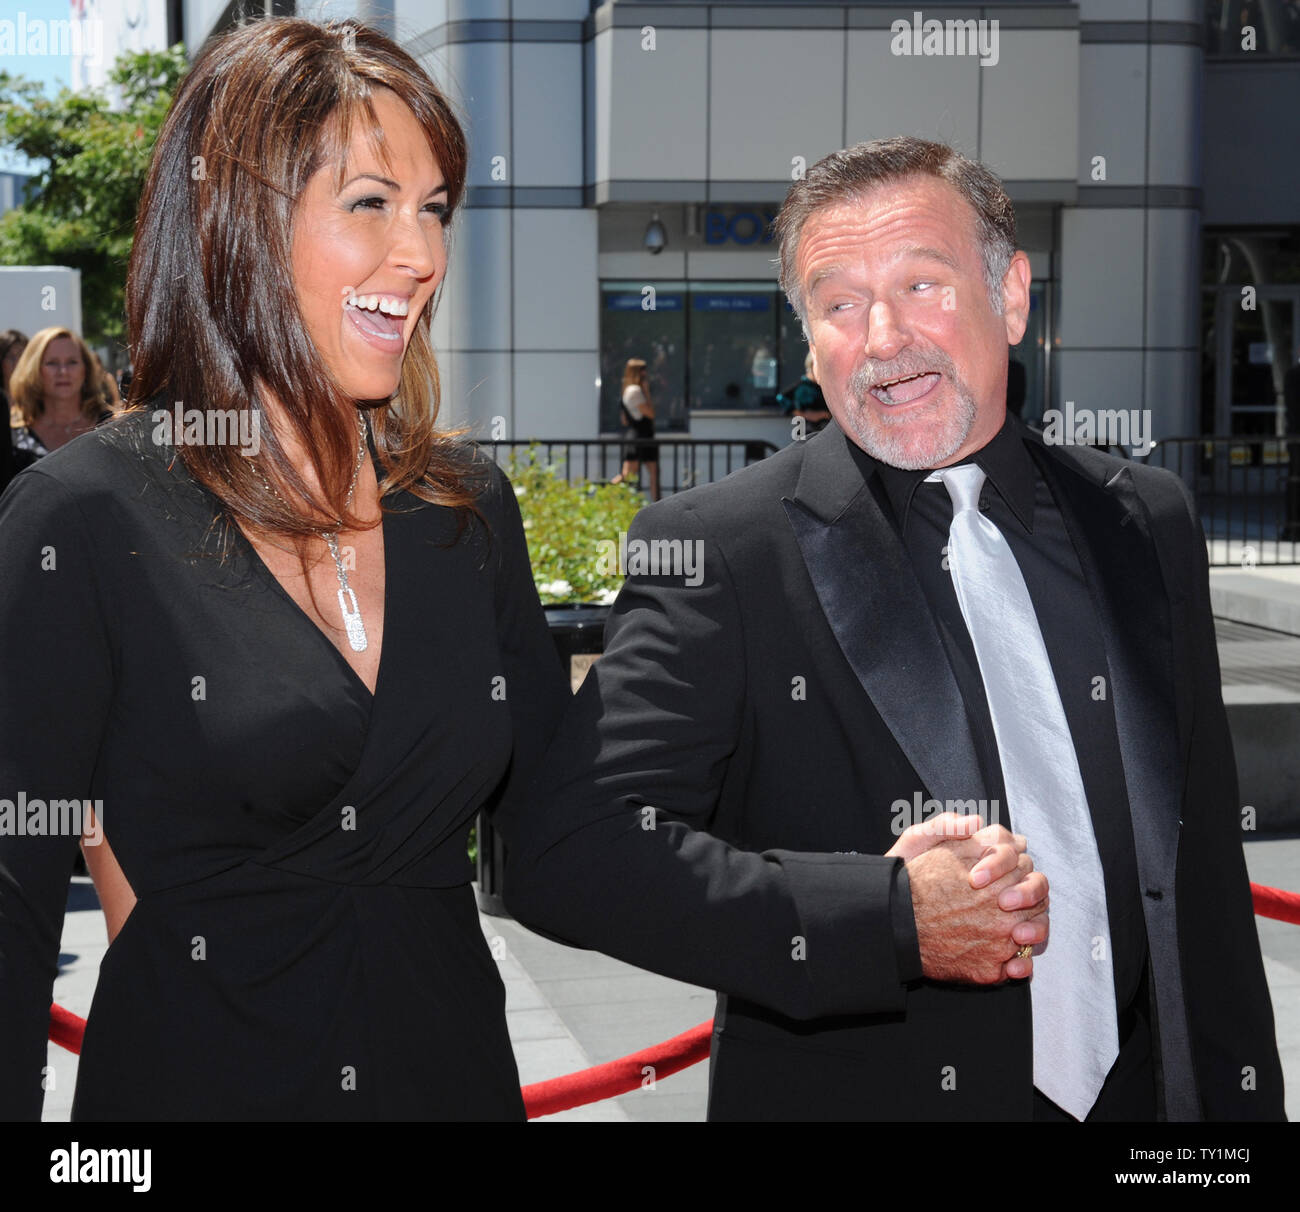 Actor Robin Williams , seen in this file photo with Susan Schneider arriving at the Creative Arts Emmy Awards in Los Angeles on August 21, 2010., was found dead in Marin County, California on August 11, 2014. He was 63.    UPI/Jim Ruymen Stock Photo